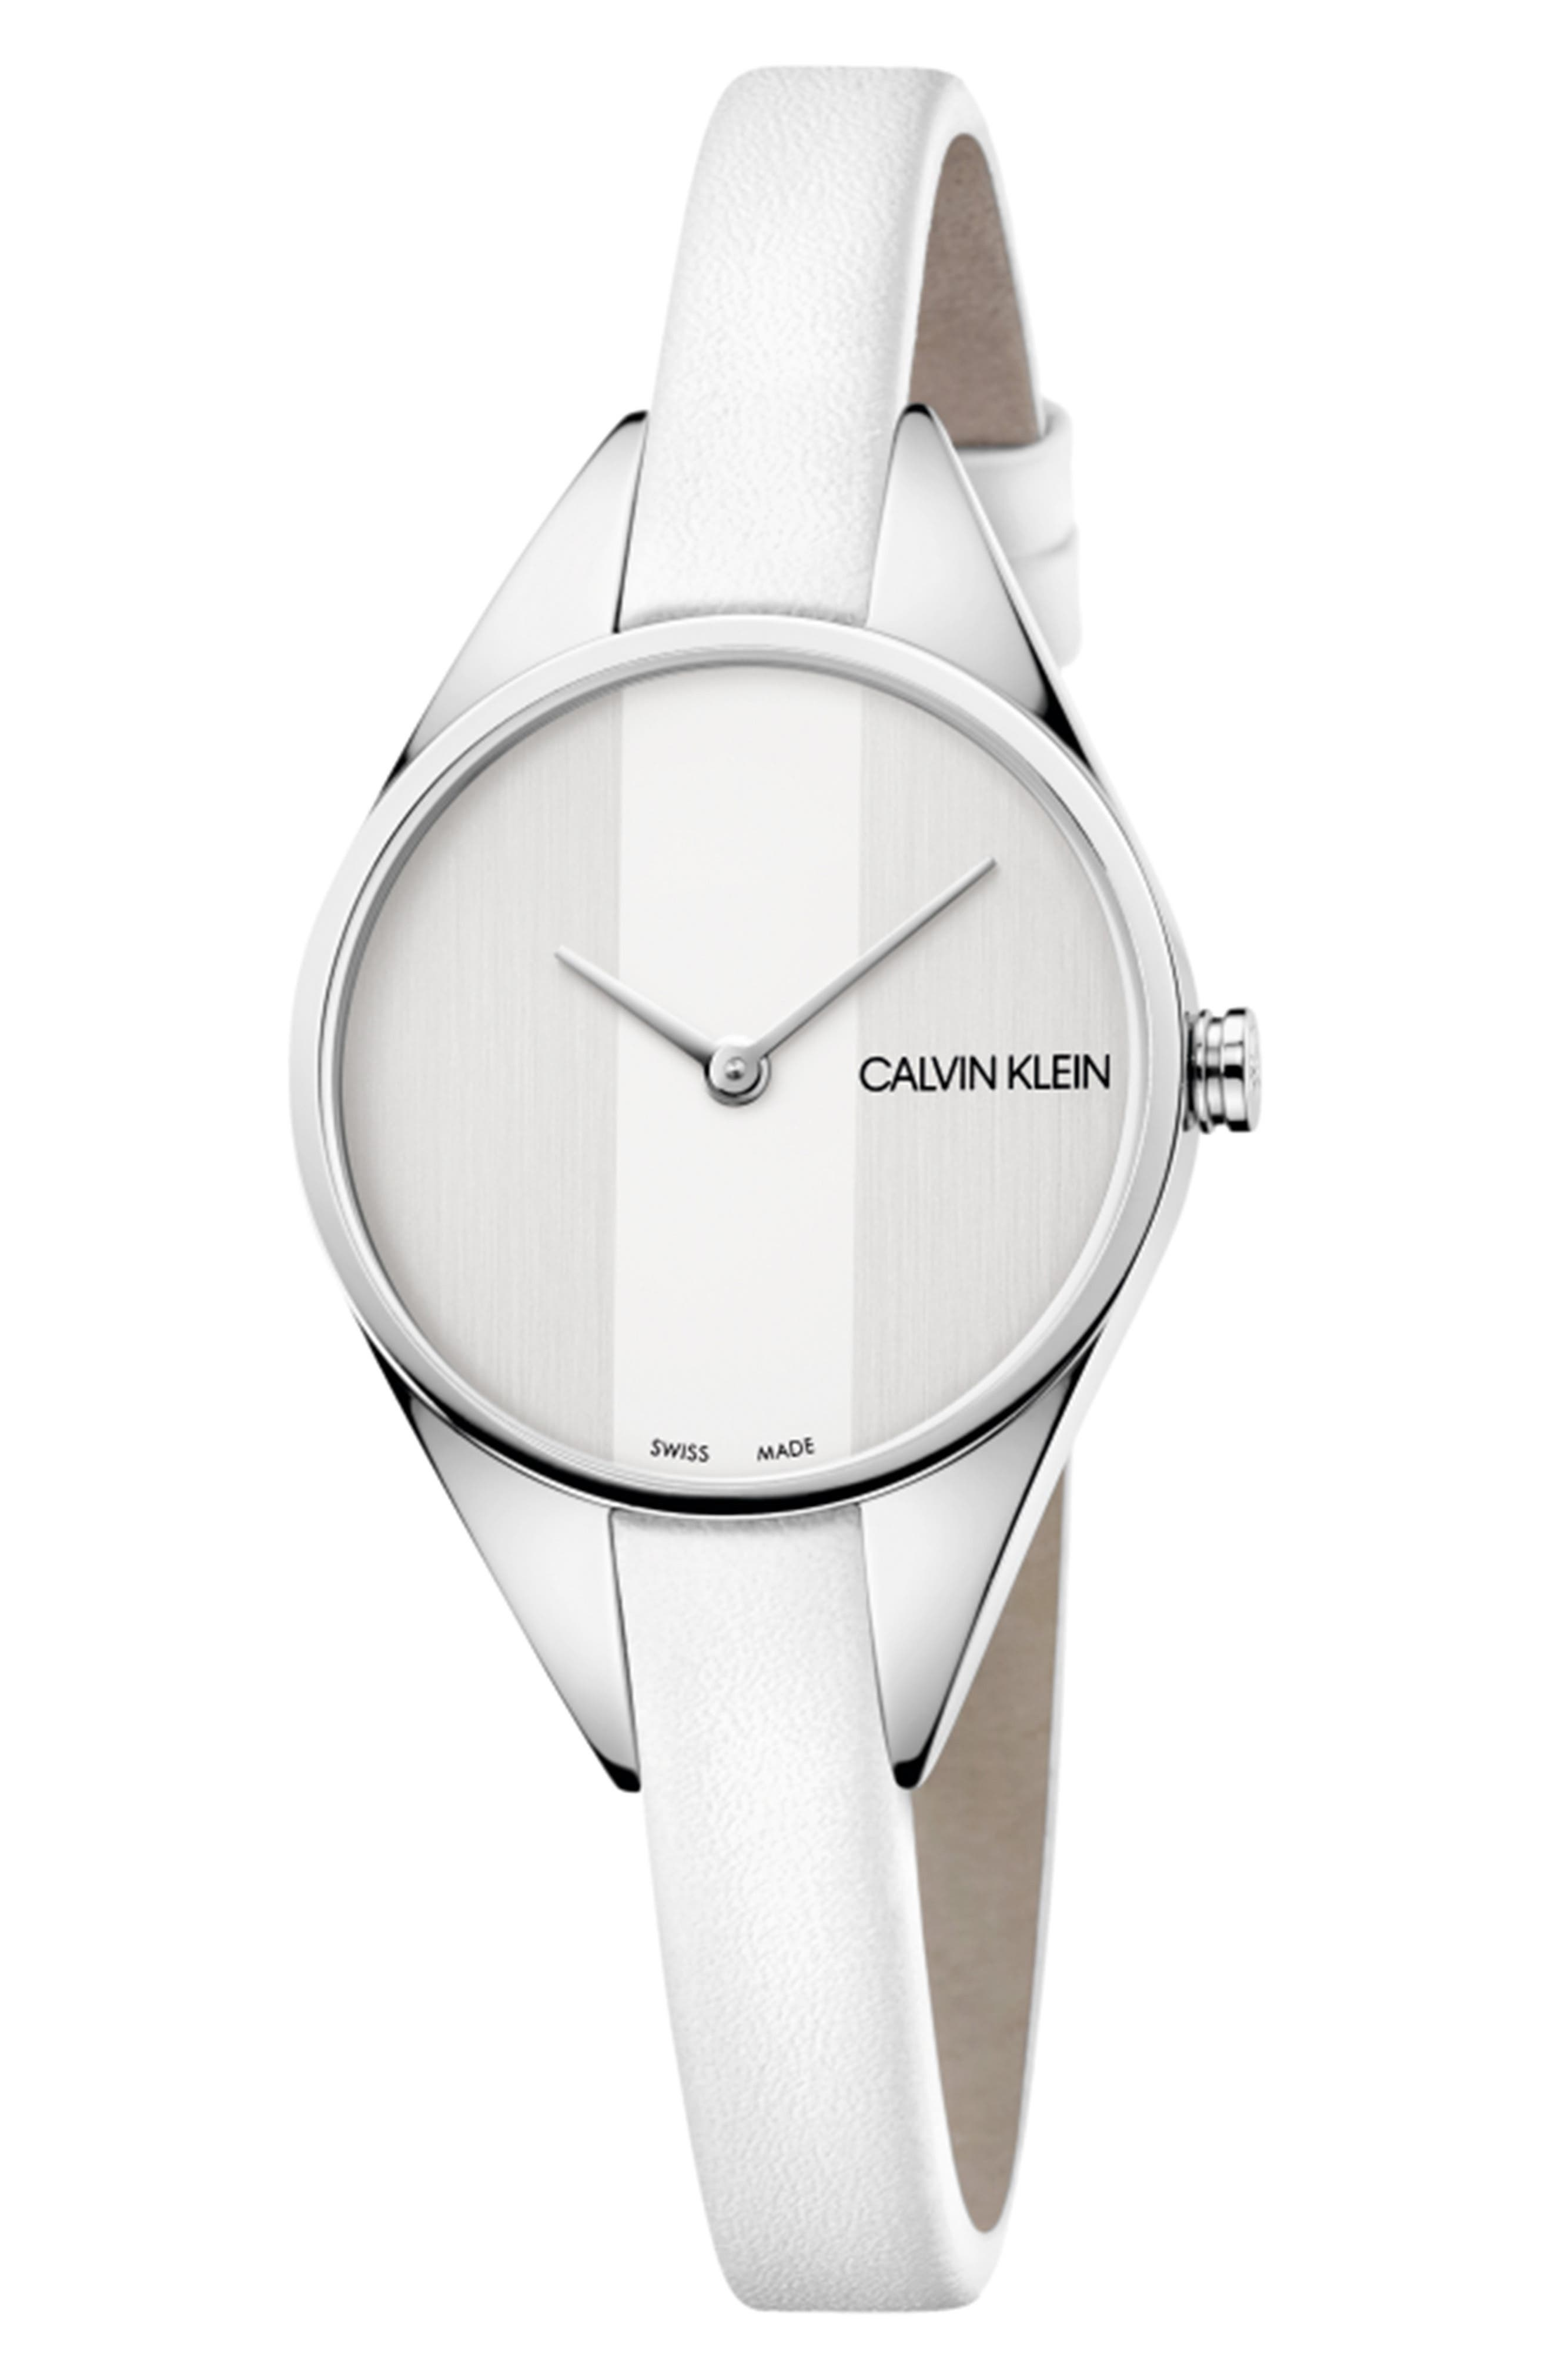 CALVIN KLEIN, Achieve Rebel Leather Band Watch, 29mm, Main thumbnail 1, color, WHITE/ SILVER